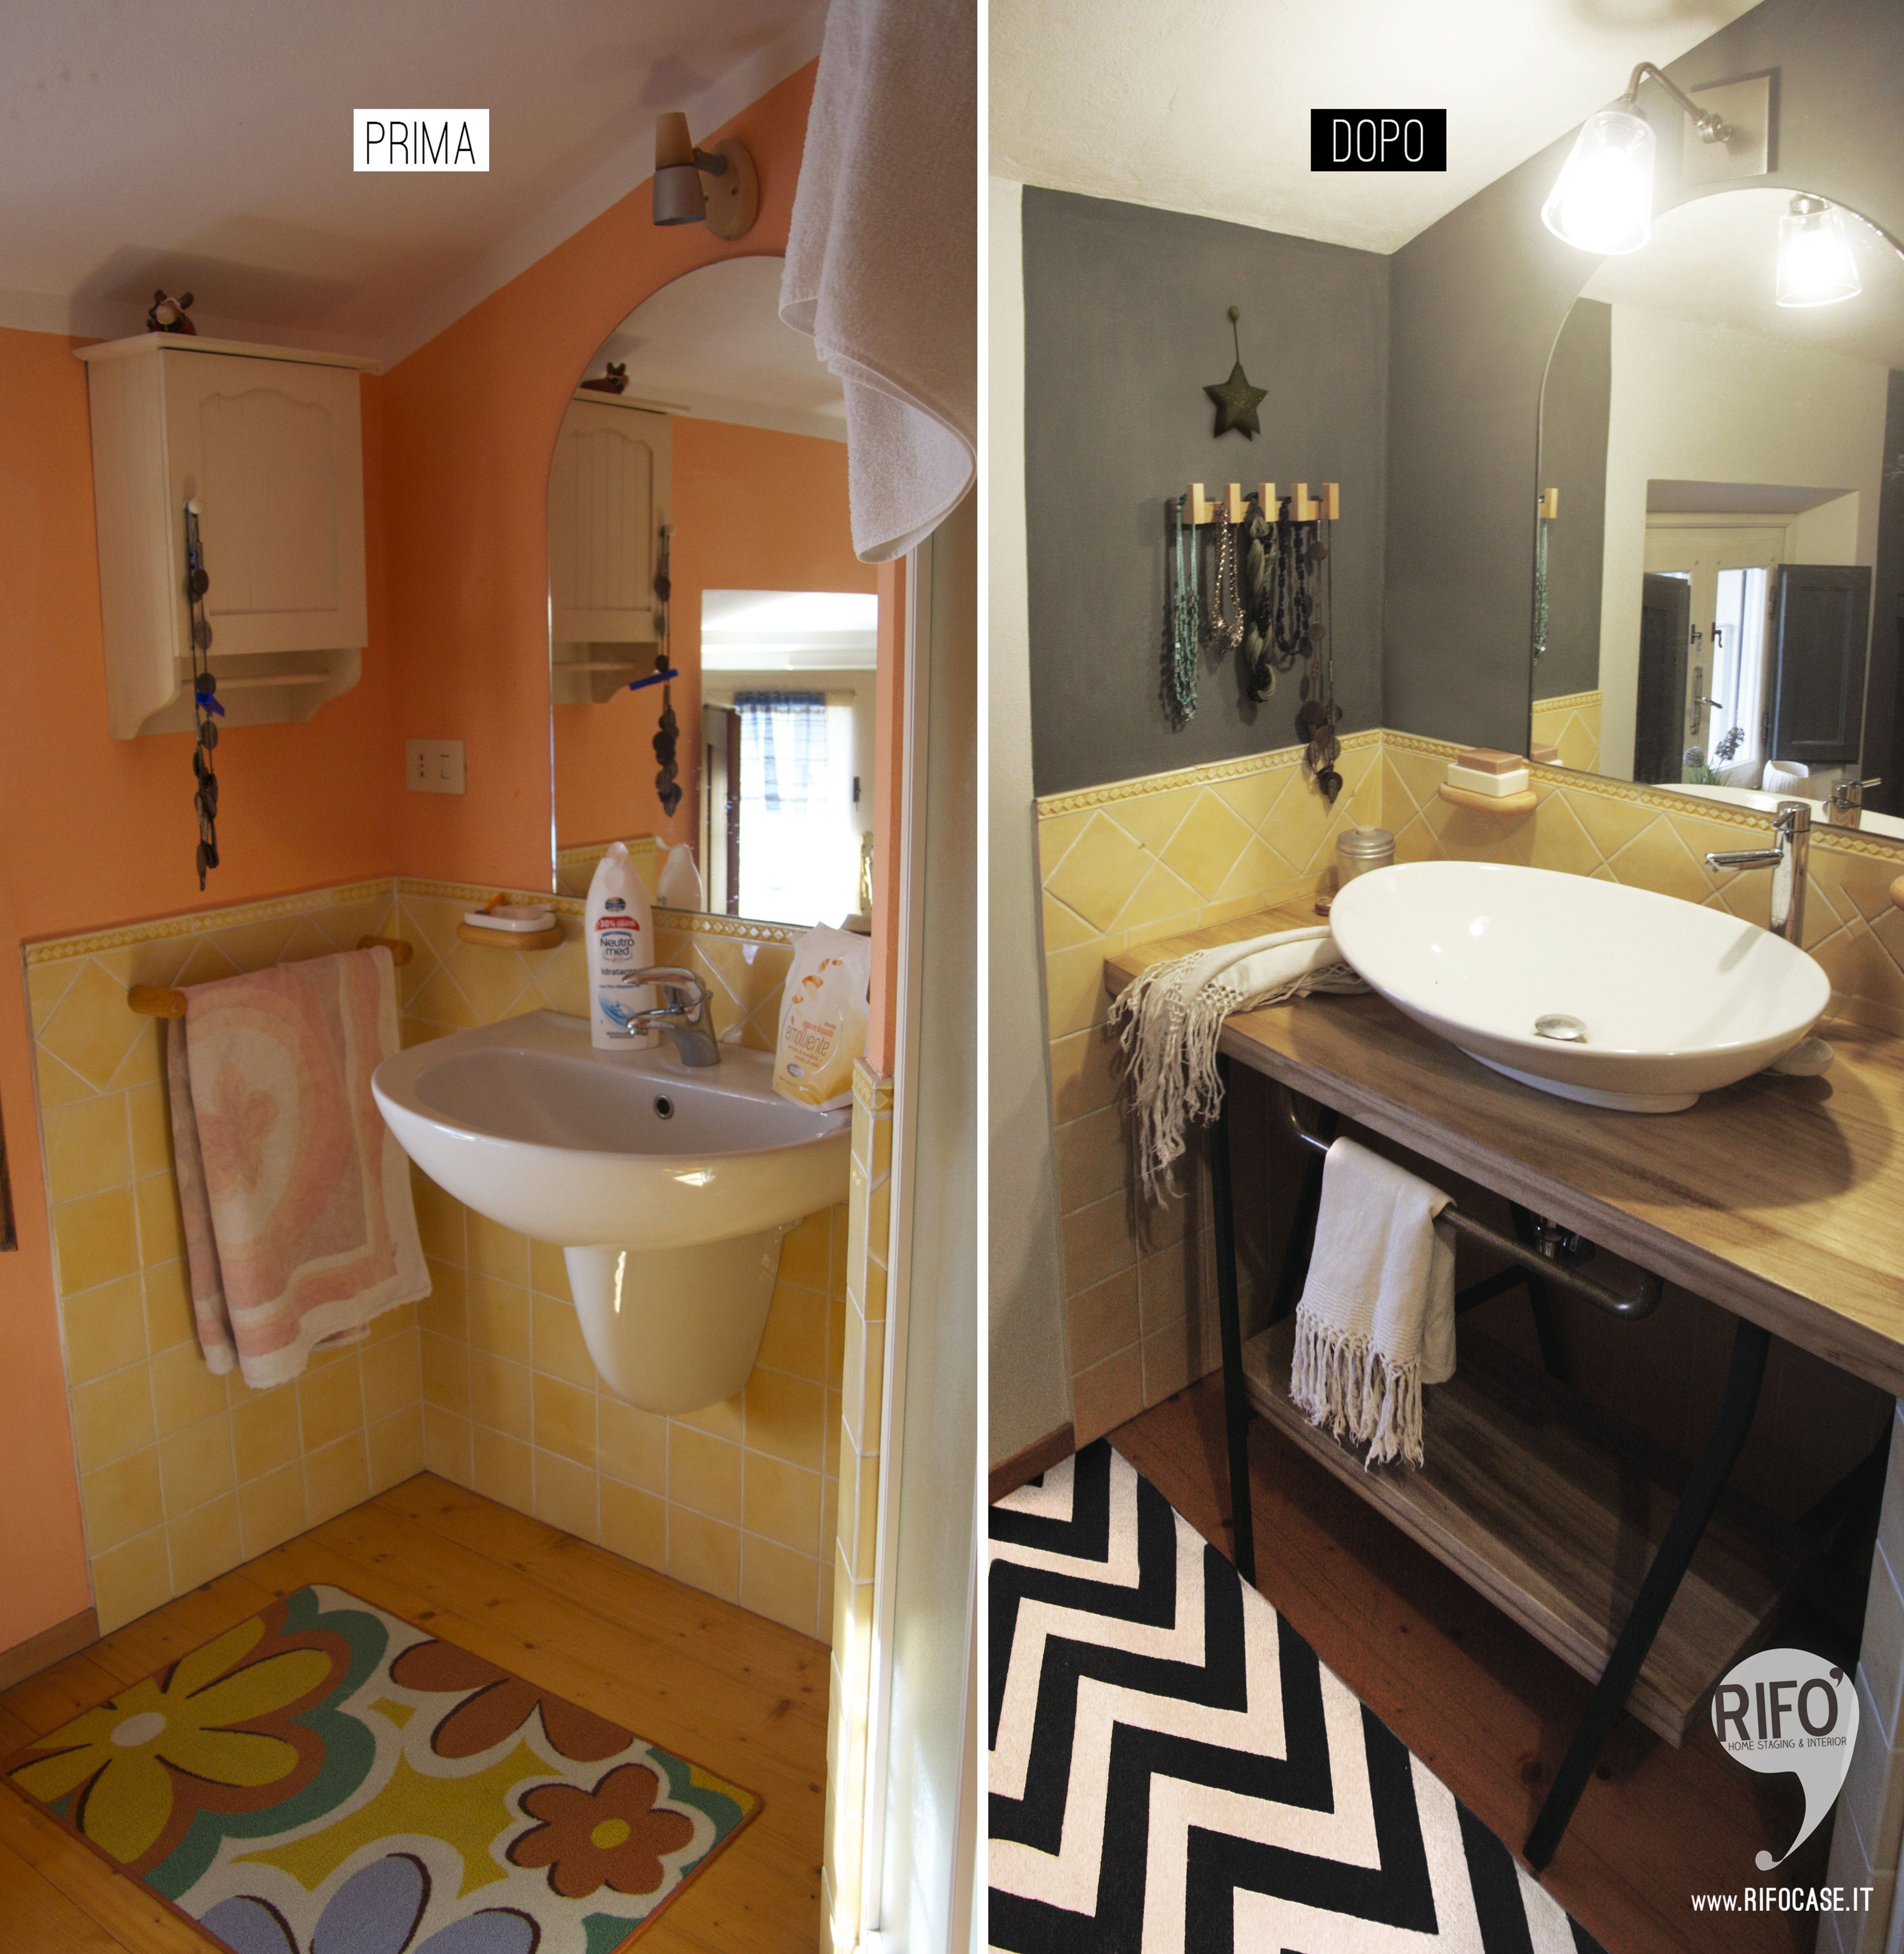 3f5490d7198e before - after: bathroom restyling - bathroom relooking low cost PRIMA E  DOPO relooking bagno